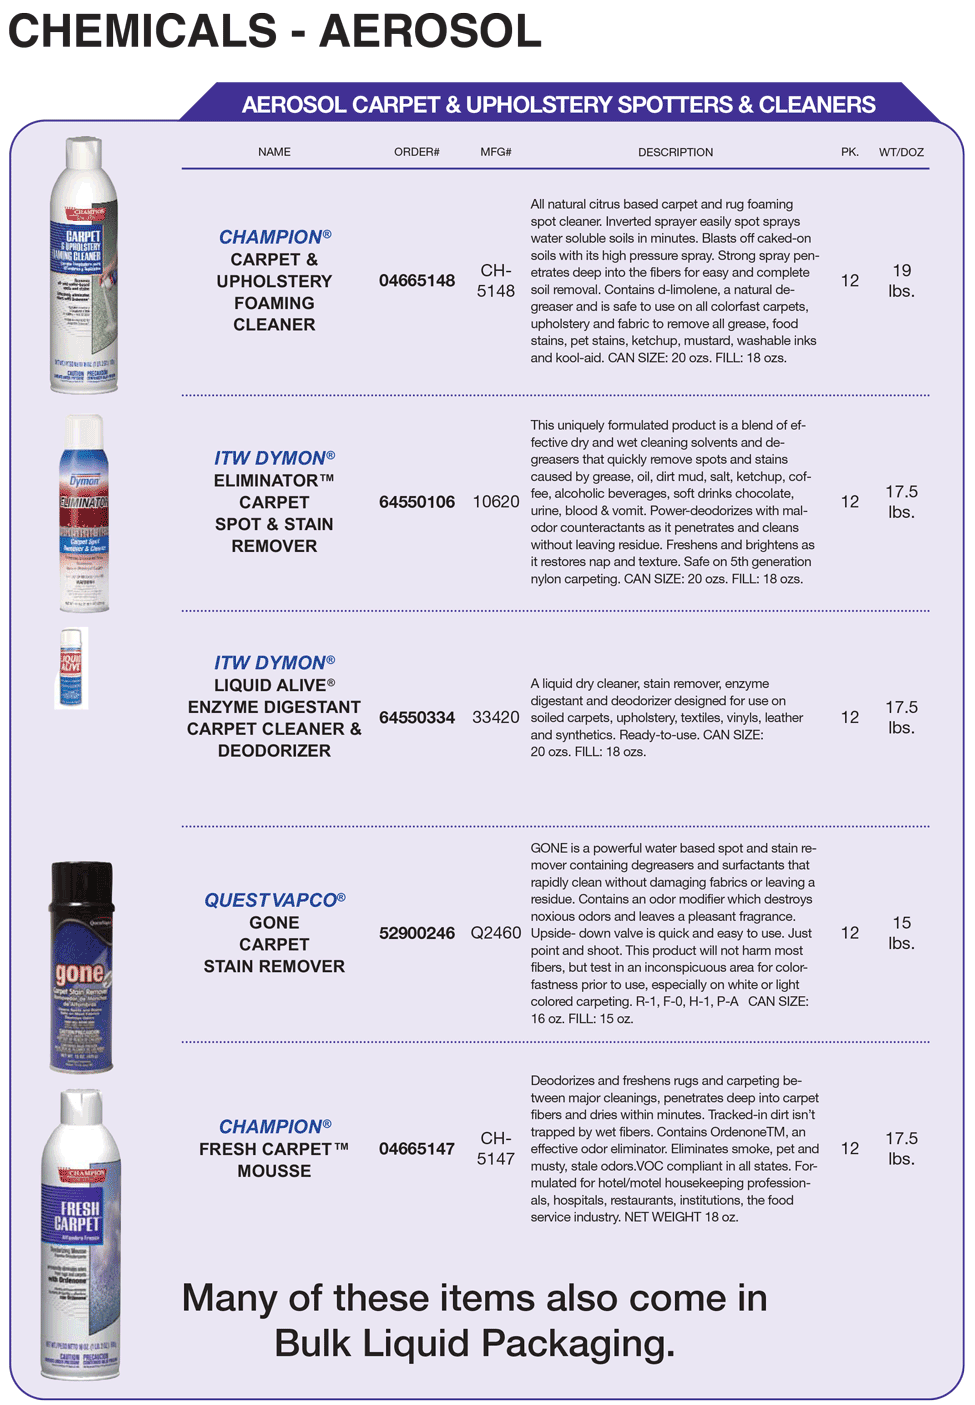 Aerosol – Carpet & Upholstery Spotters & Cleaners